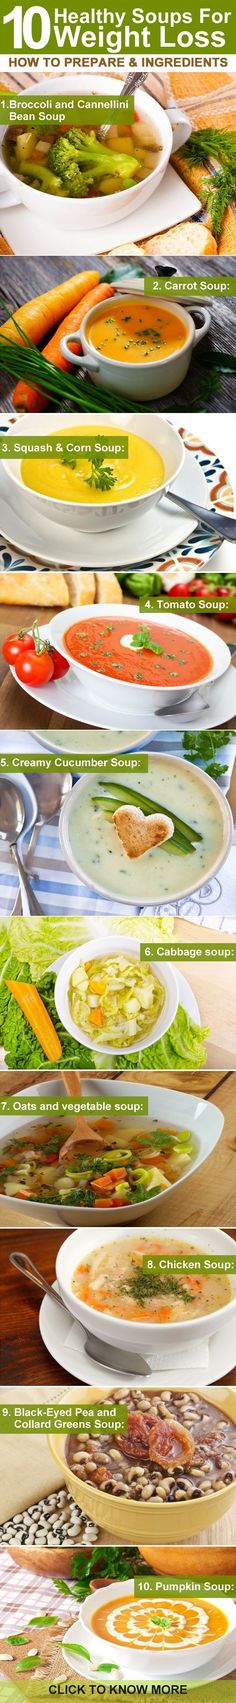 (healthbeckon.com) Soups, especially low calorie vegetable soups are best options for weight loss. Learn the healthy recipes of soups for weight loss given for you.